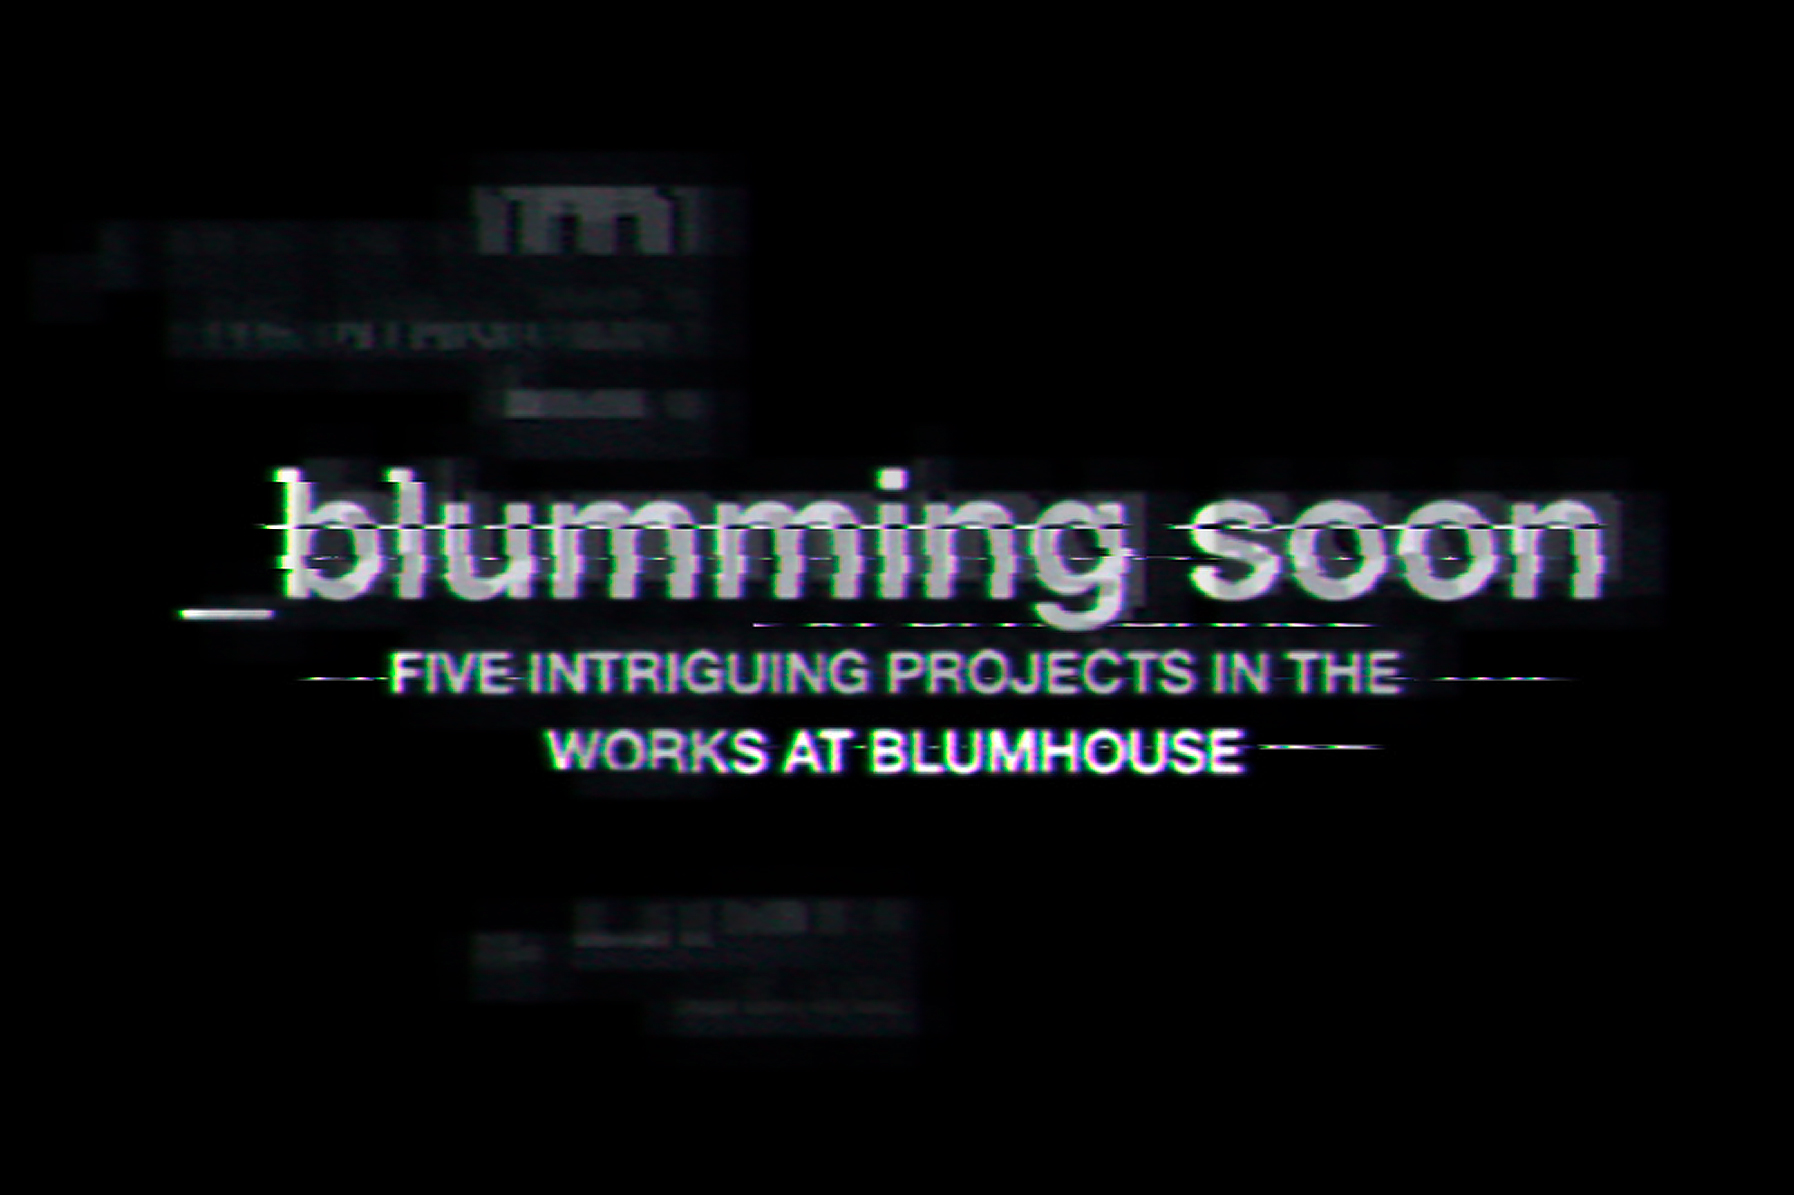 Scene-Blumhouse-close41.jpg